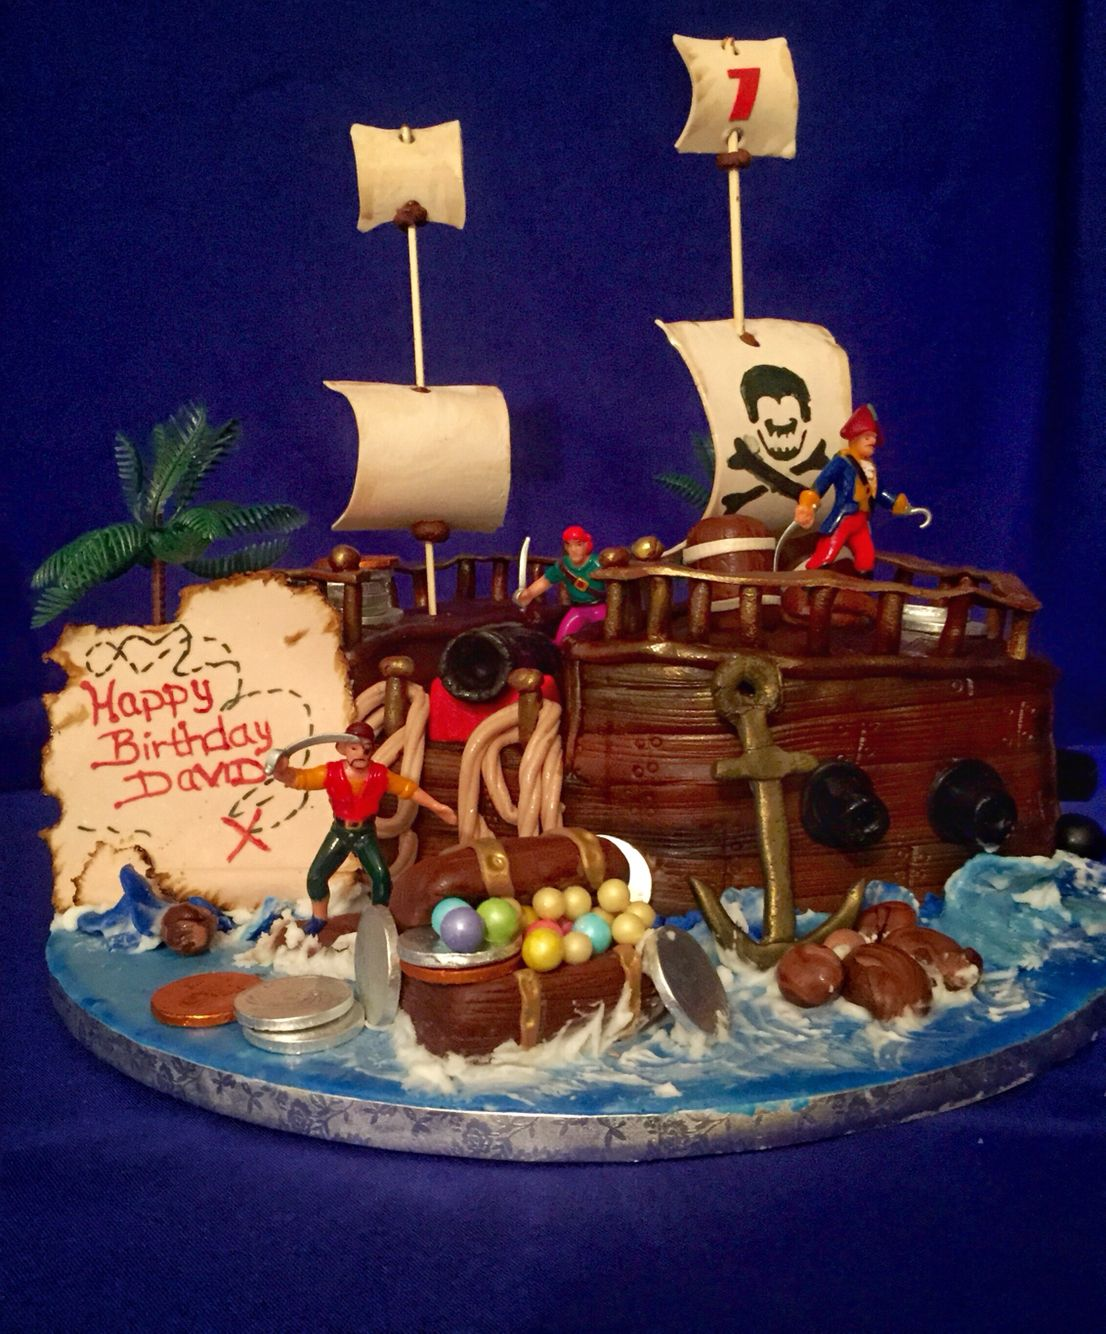 Pirate ship birthday cake for a little boys 7th birthday party